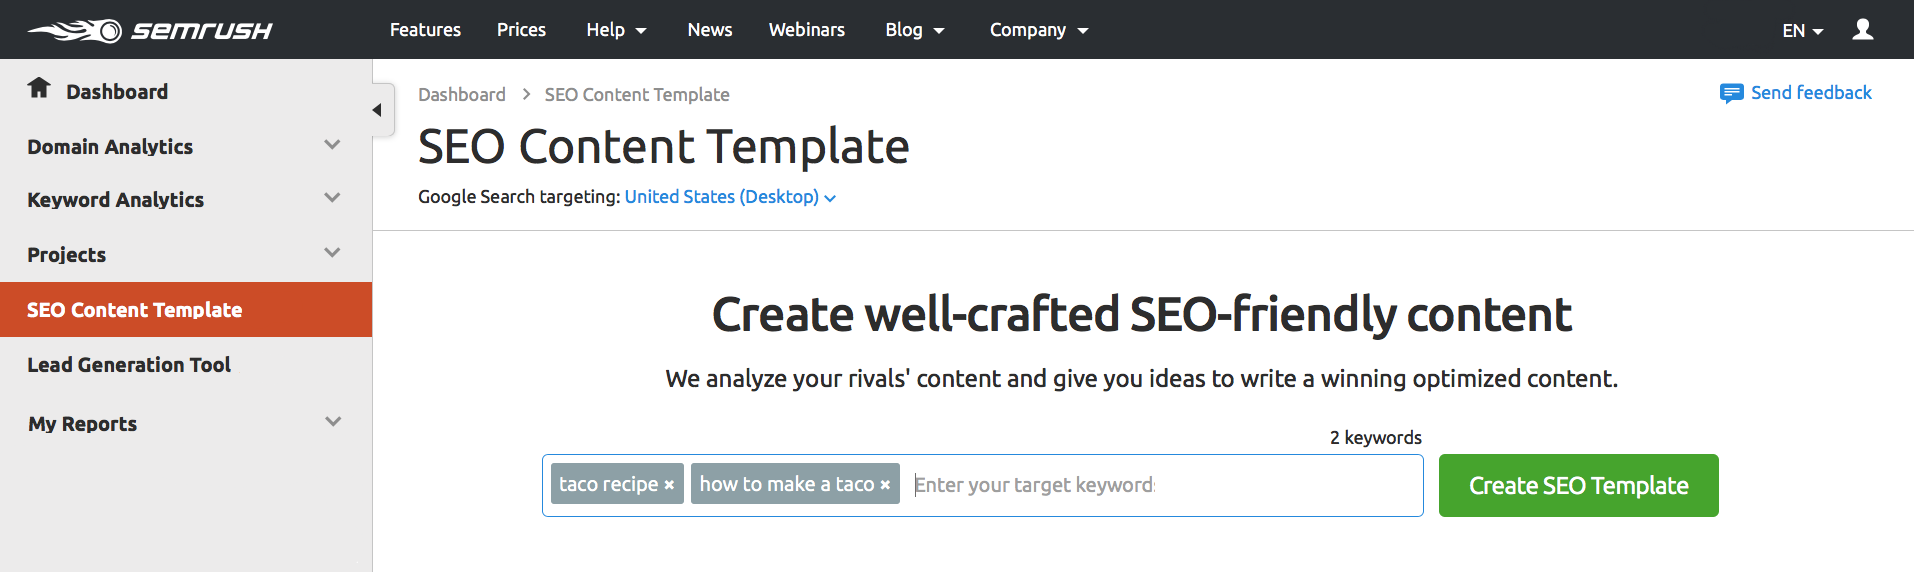 SEMrush: SEO Templates for Content in One Click image 2